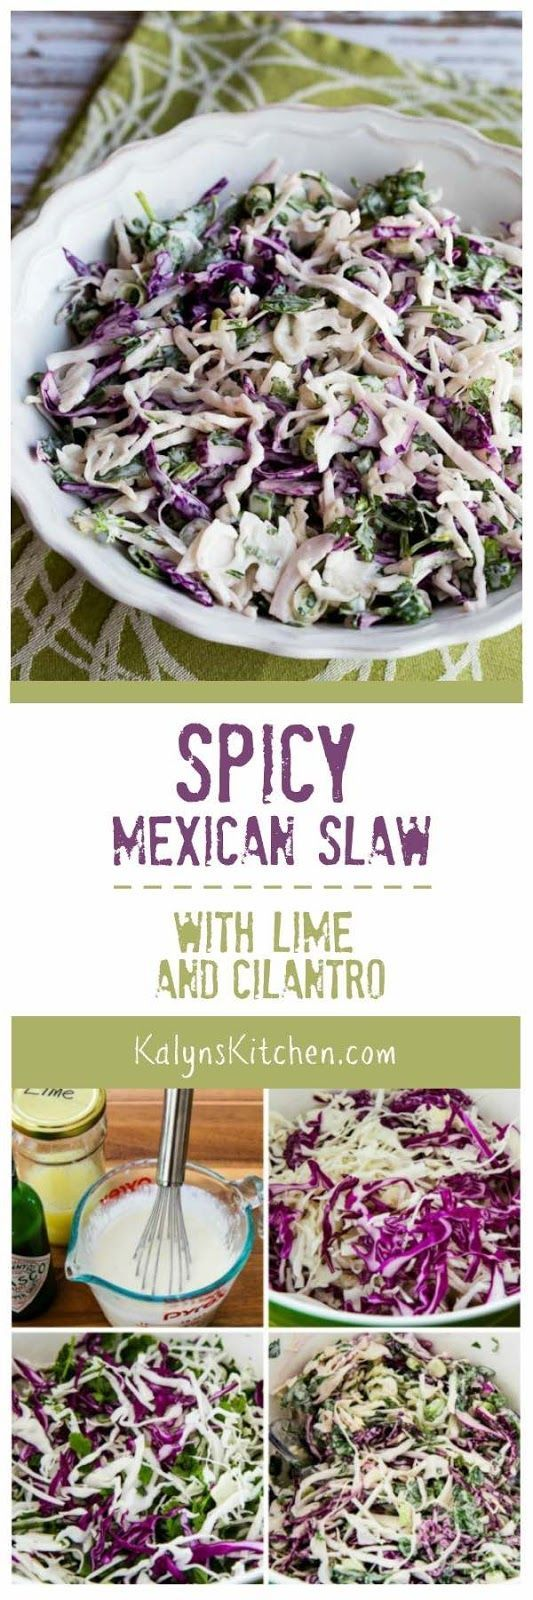 Spicy Mexican Slaw with Lime and Cilantro is a salad that's been one of my personal favorites for years! In my family I make one bowl with cilantro and one with extra green onion for the cilantro haters. This amazing salad is low-carb, gluten-free, vegan, and South Beach Diet friendly, and with the right mayo and hot sauce it can be Paleo or Whole 30 as well. [found on KalynsKitchen.com]: